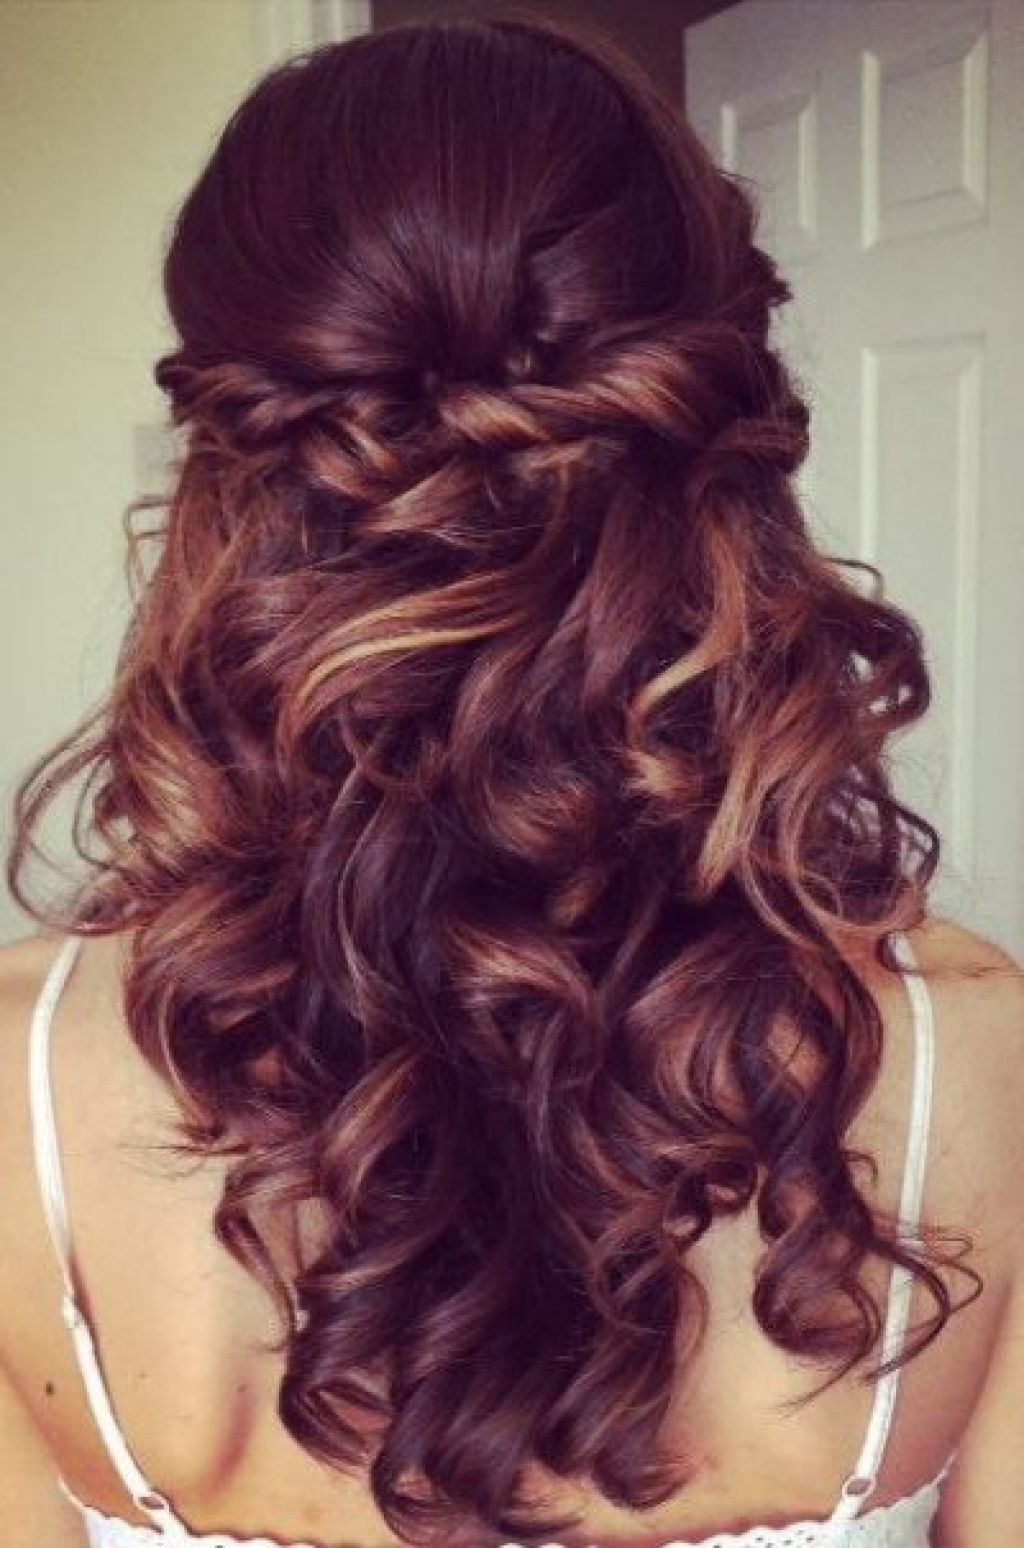 Trendy Formal Half Ponytail Hairstyles Intended For Elegant Curly Half Updo Prom Hairstyle With Bouncy Long Curls (View 19 of 20)